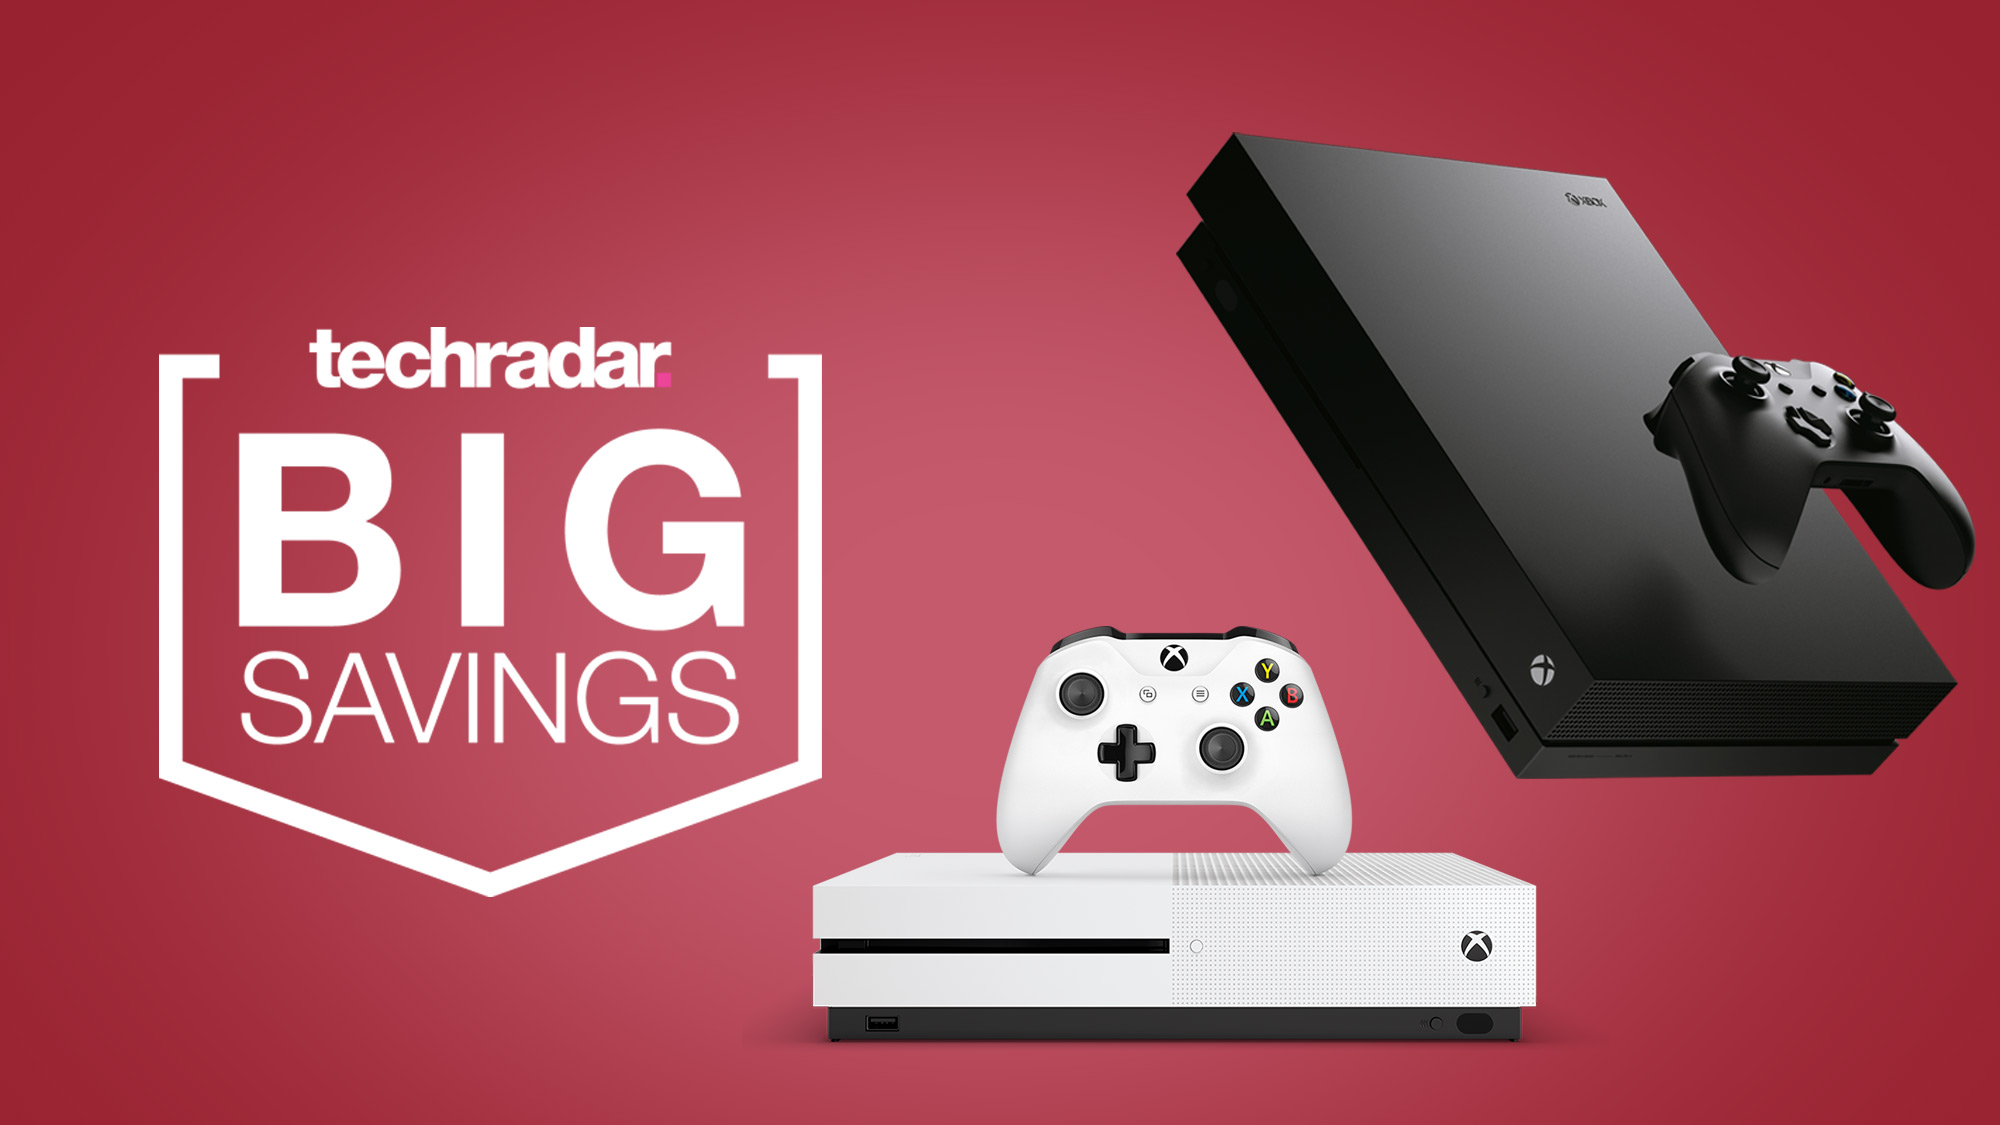 These stunning Xbox One deals are slashing prices across the full range right now